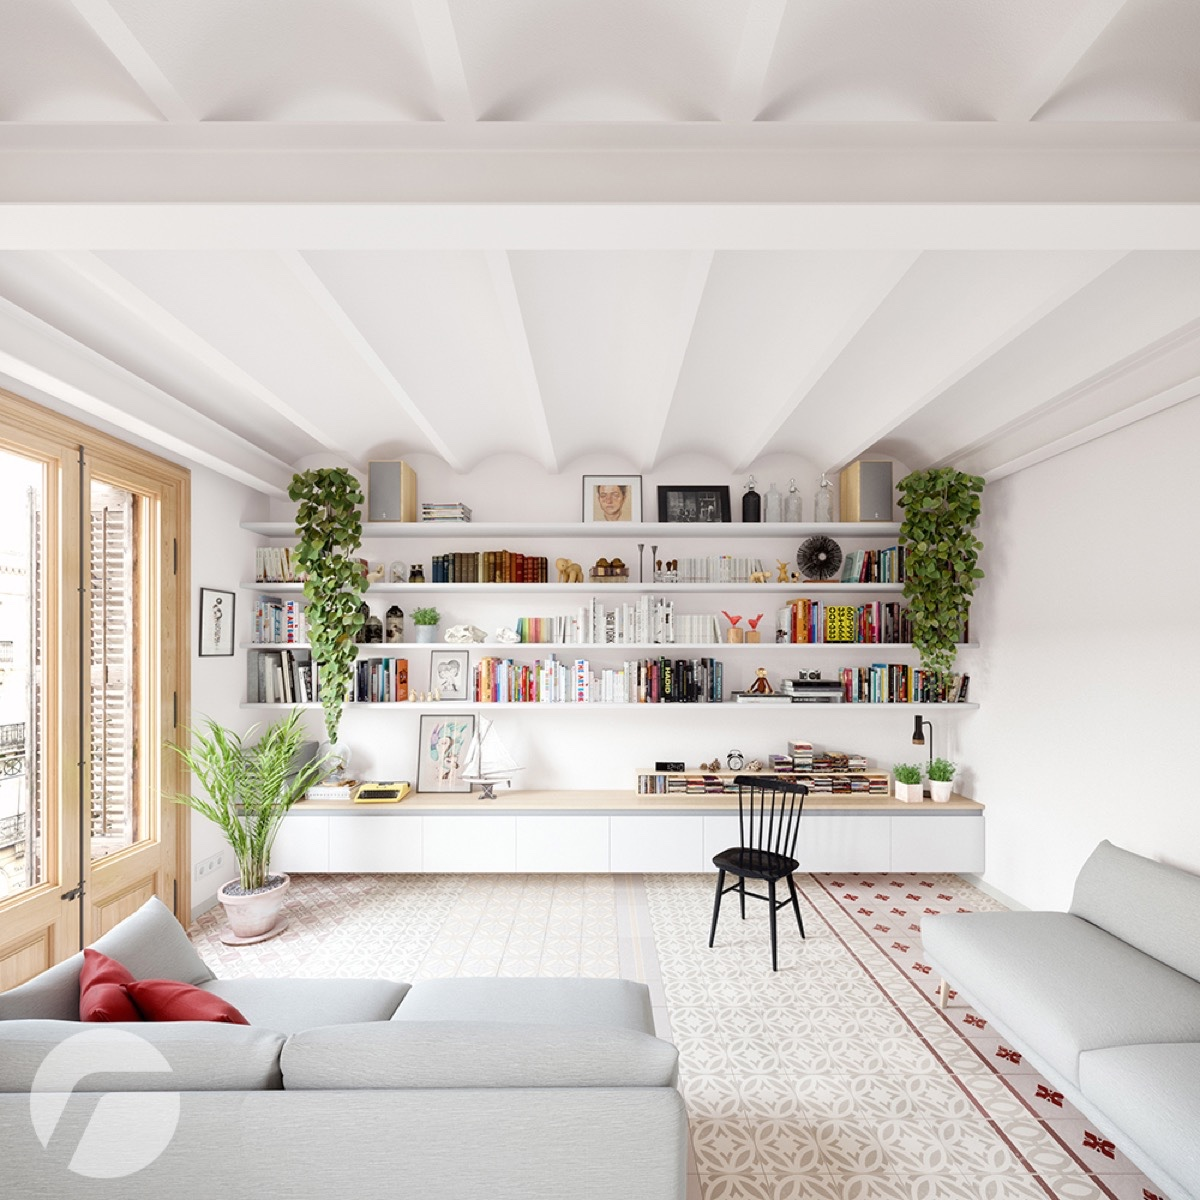 Interior Design For House: 10 Stunning Apartments That Show Off The Beauty Of Nordic